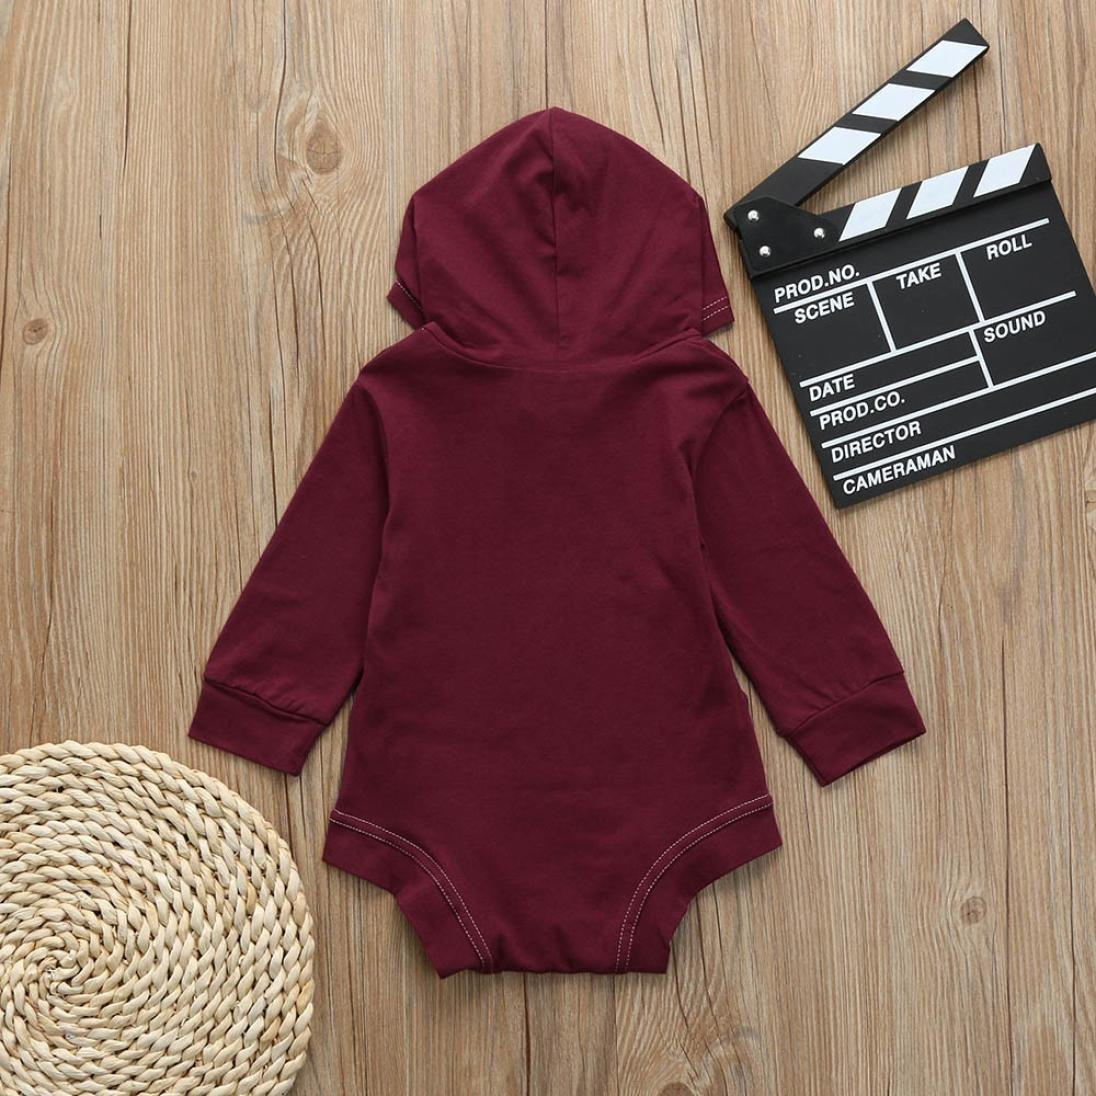 iumei Baby Unisex Spring Clothes 2 Color Long Sleeve Hoodies Bodysuit Jumpsuit with Pocket